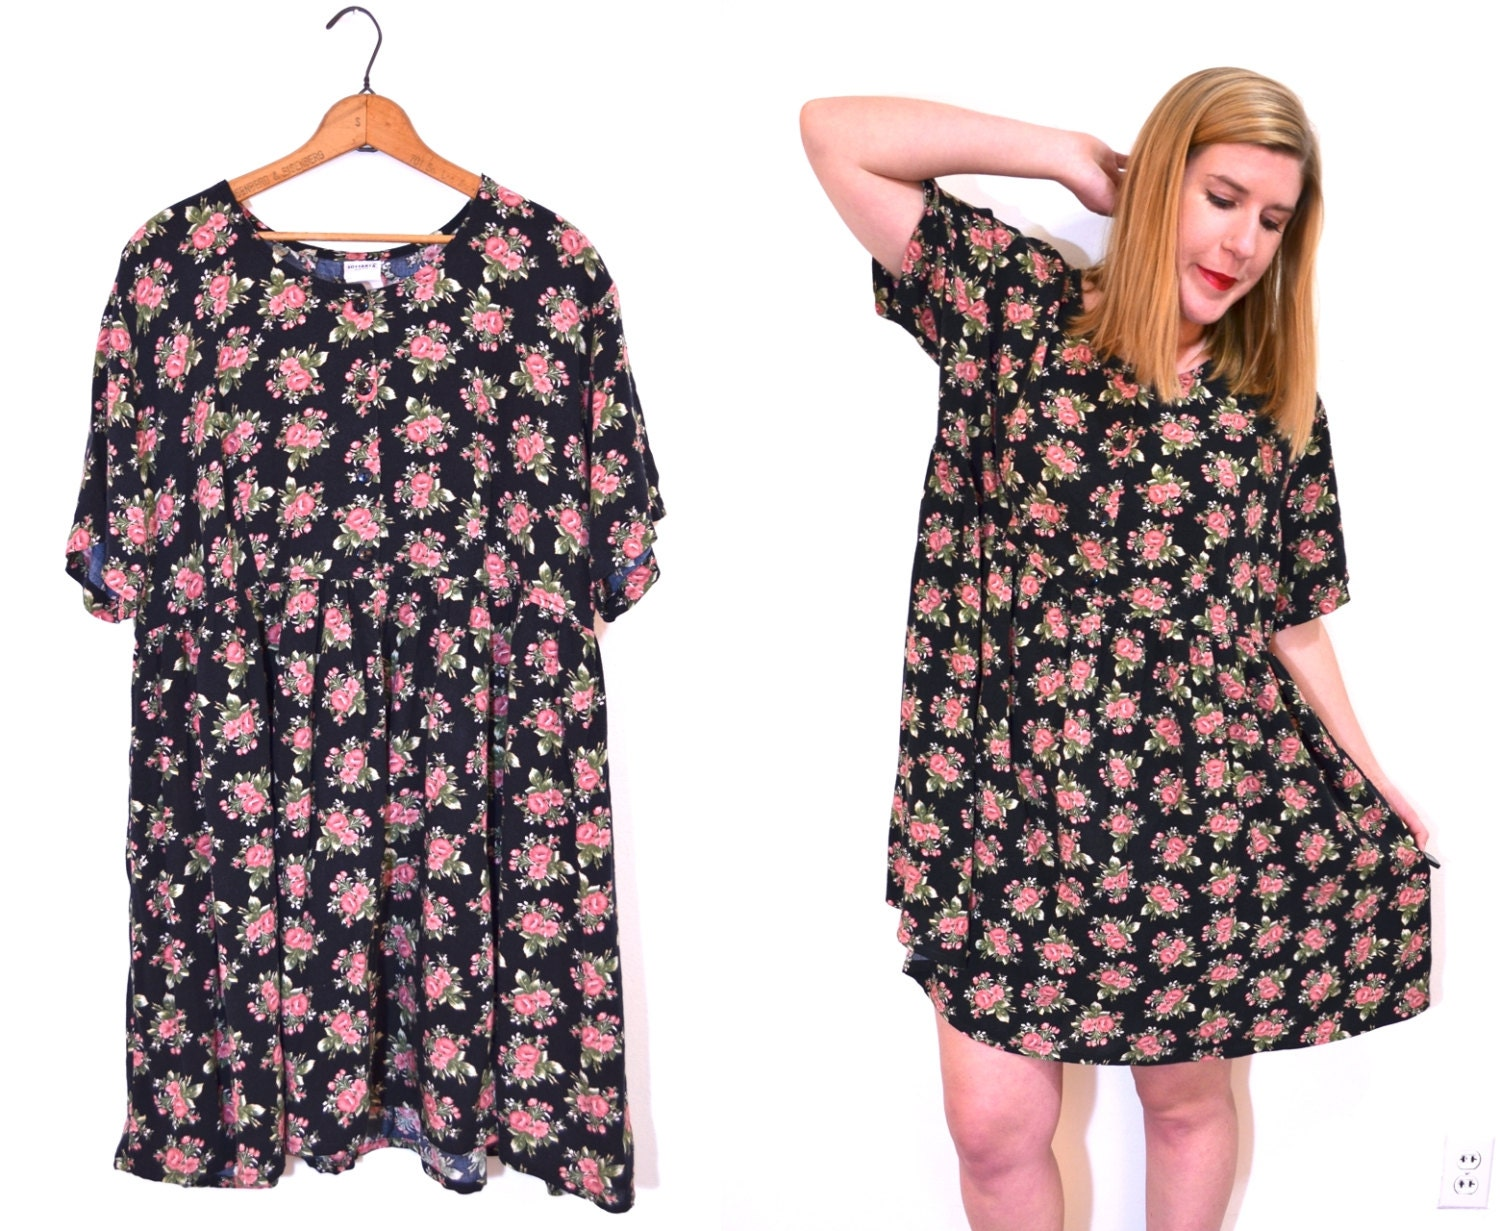 Baby Doll Dresses for Plus Size_Plus Size Dresses_dressesss